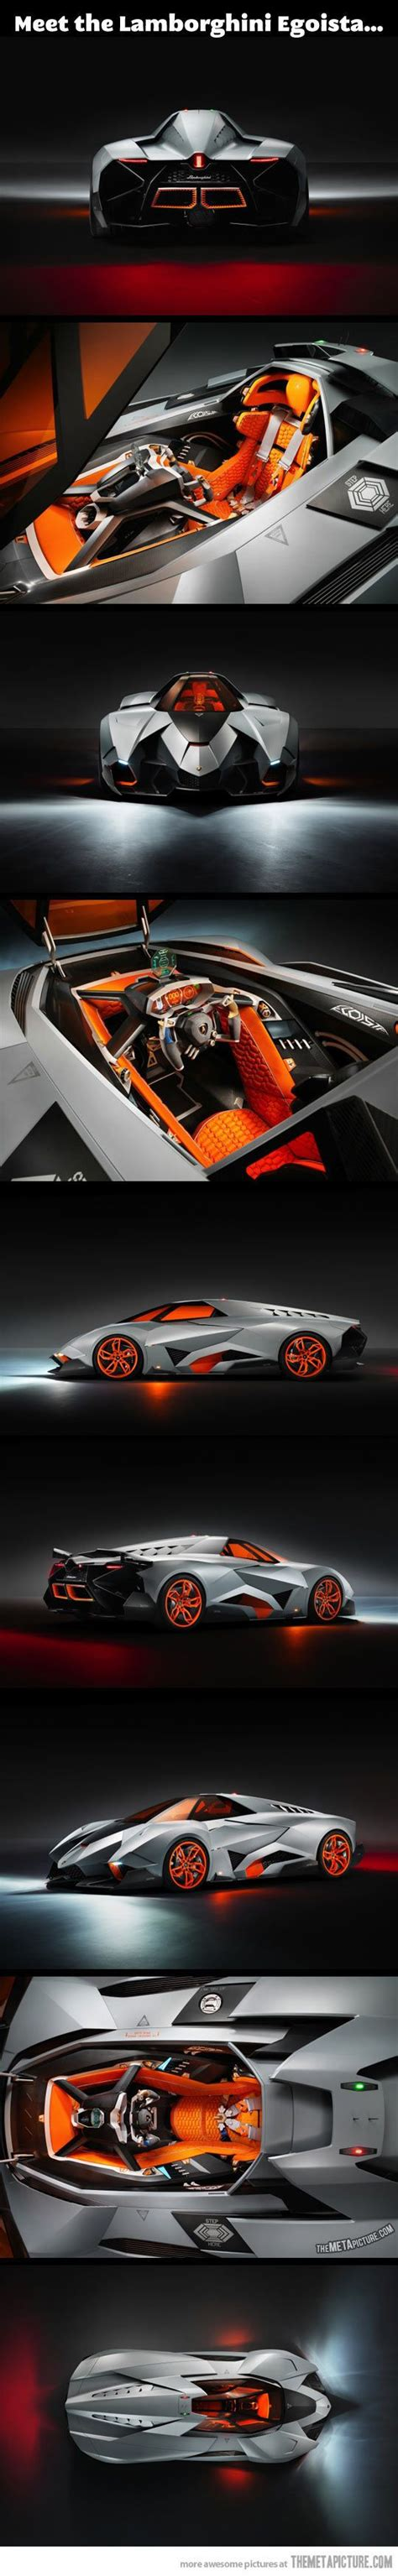 How Fast Is The Lamborghini Egoista Lamborghini Egoista Wheel Effects